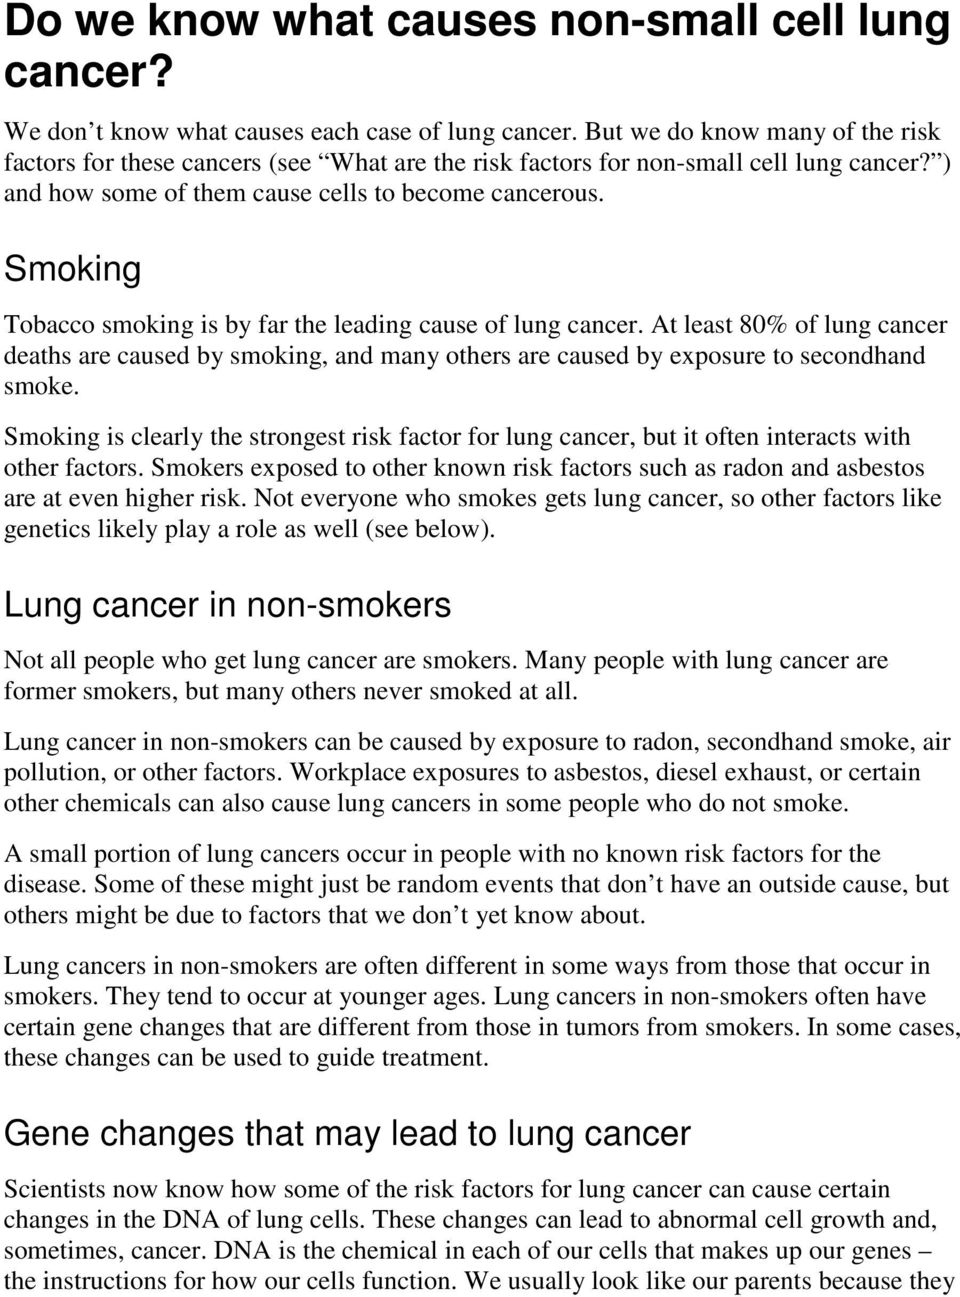 Smoking Tobacco smoking is by far the leading cause of lung cancer. At least 80% of lung cancer deaths are caused by smoking, and many others are caused by exposure to secondhand smoke.